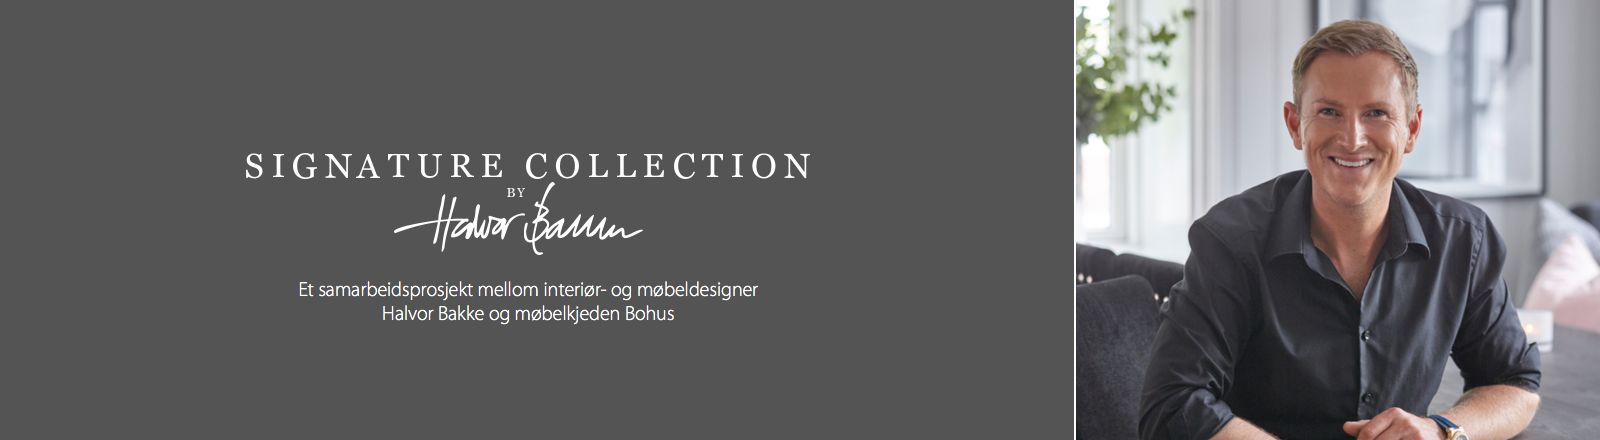 Signature Collection by Halvor Bakke